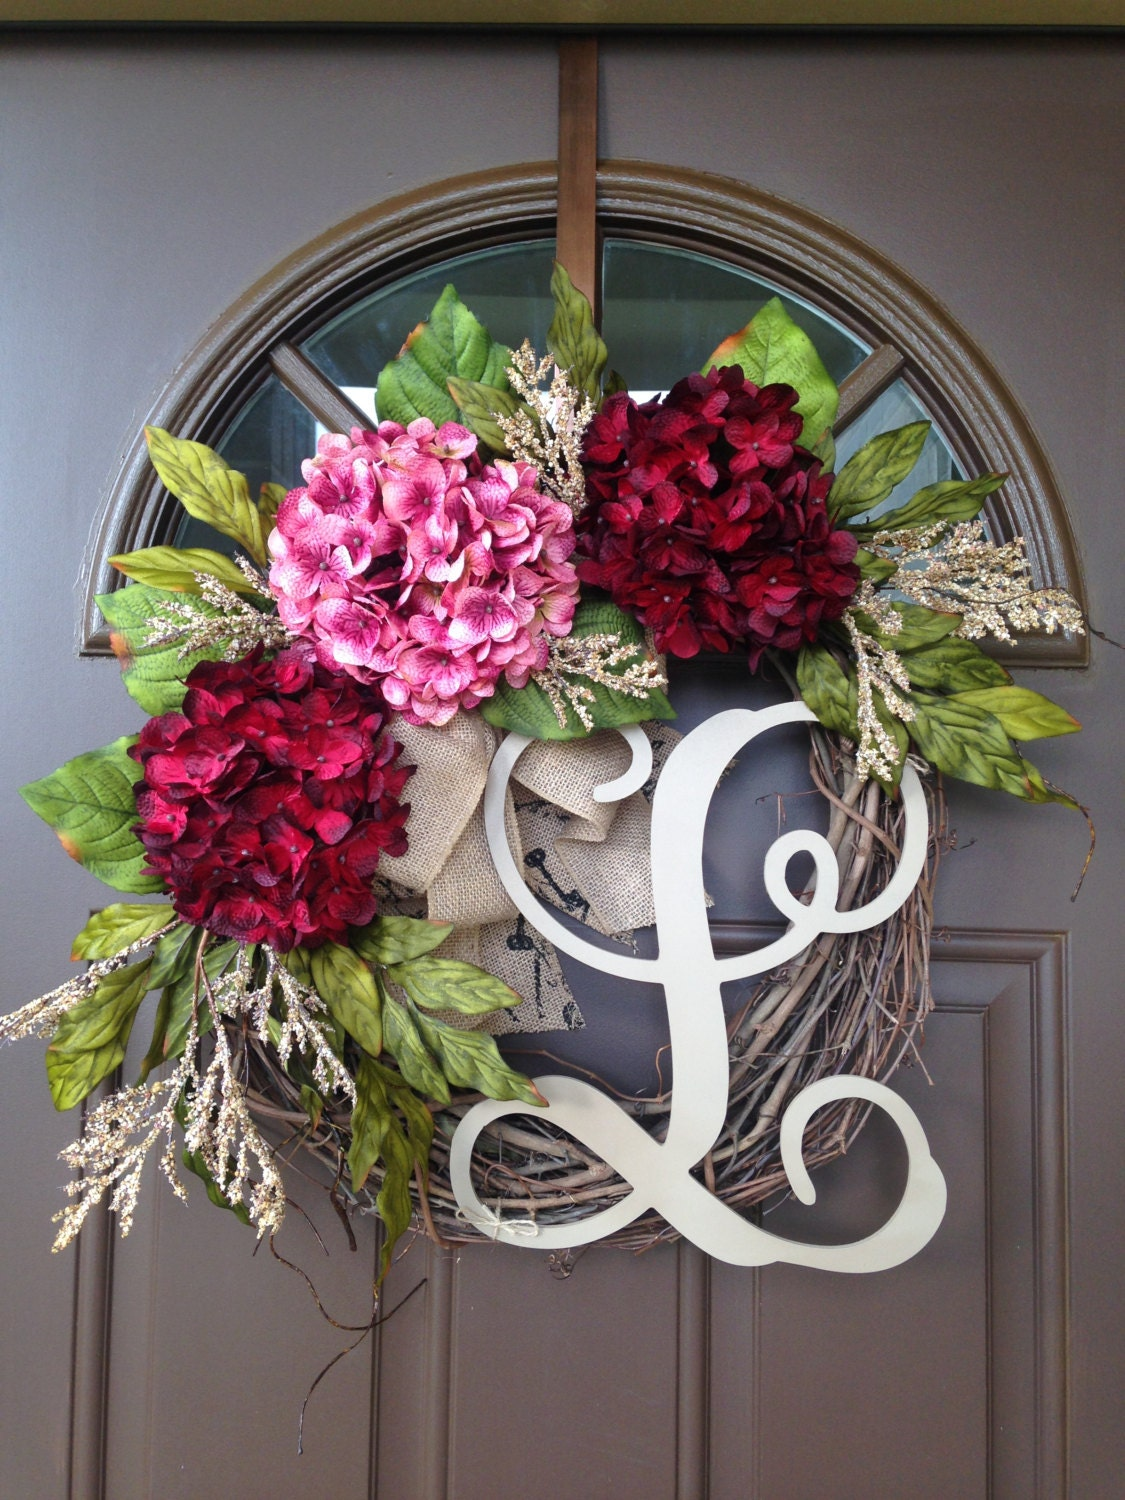 Wreath grapevine initial wreath front door decor by flowenka for 3 wreath door decoration